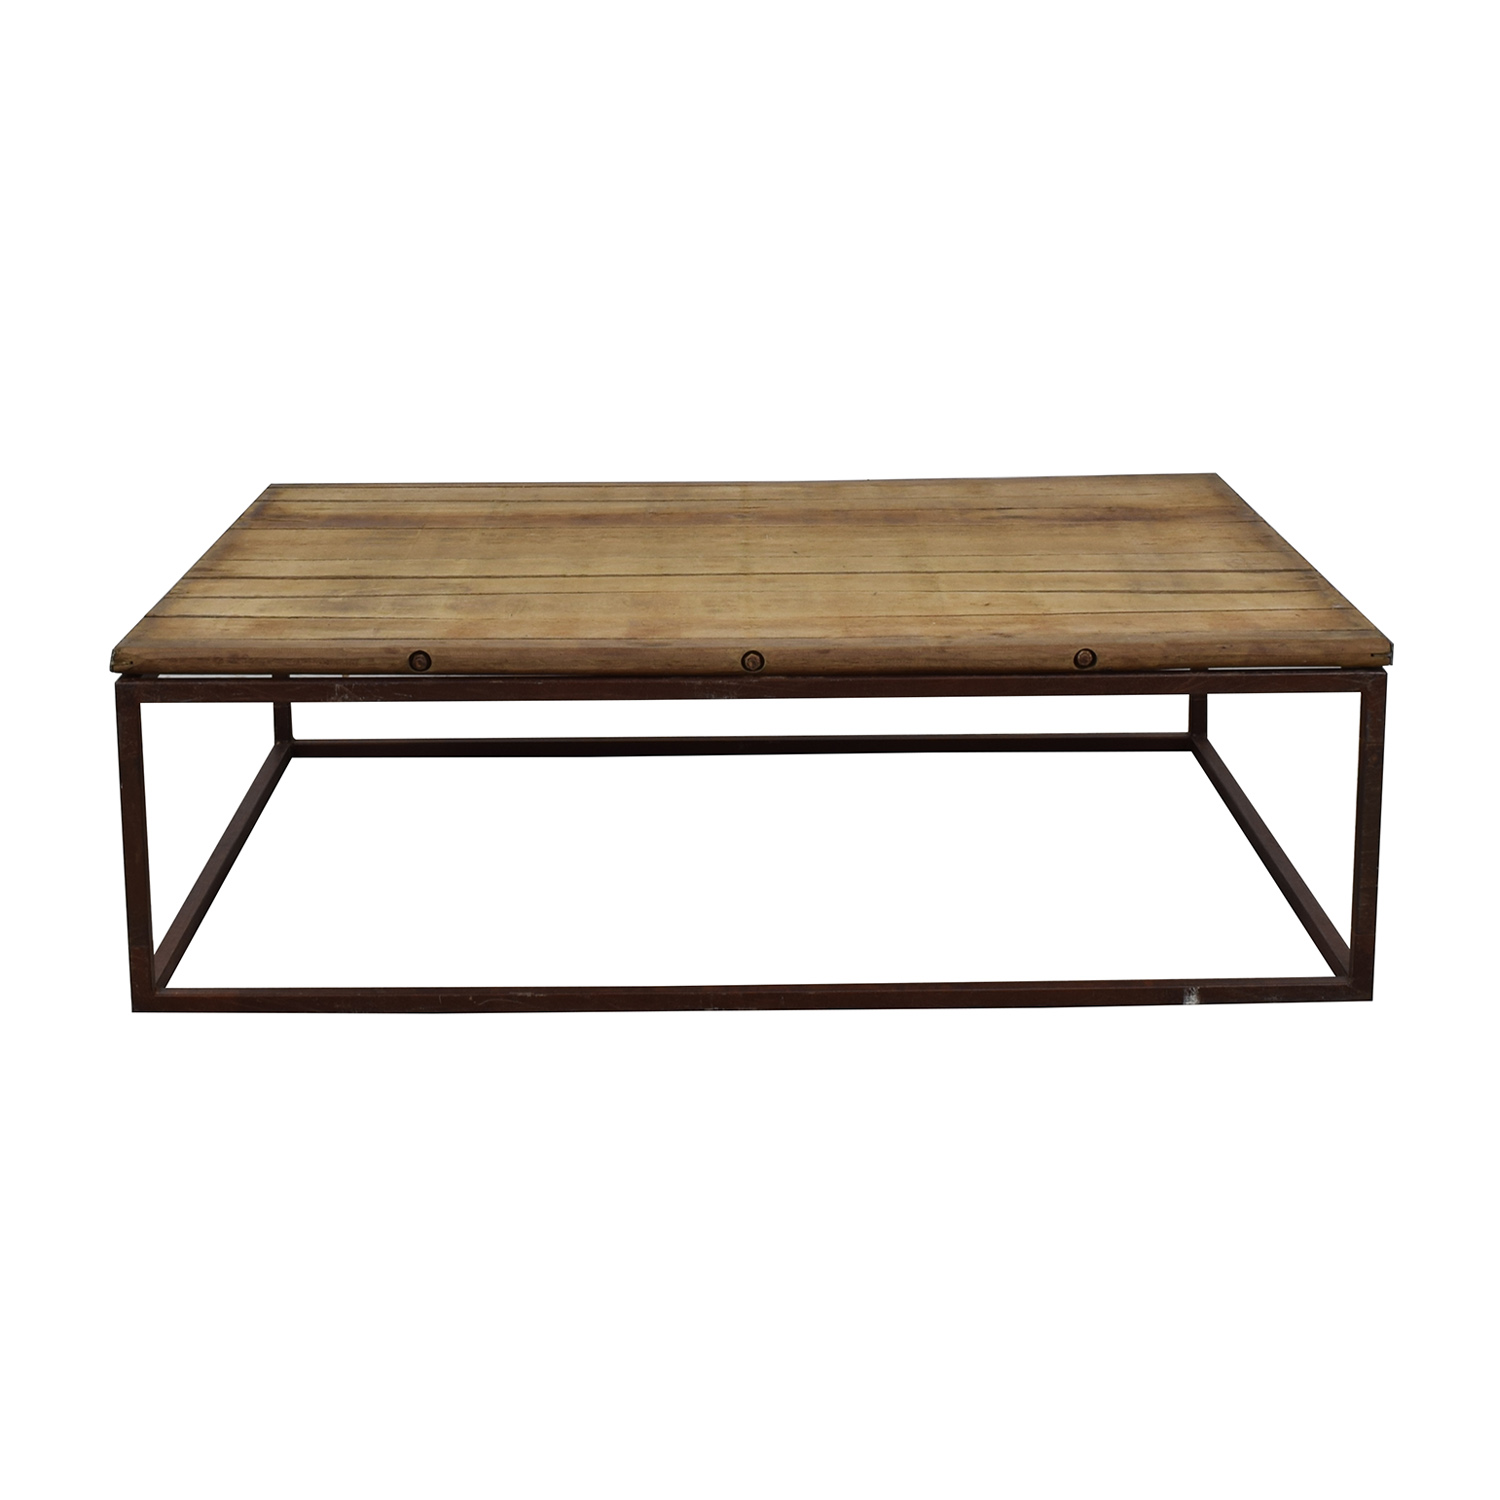 John Derian Coffee Table Tables